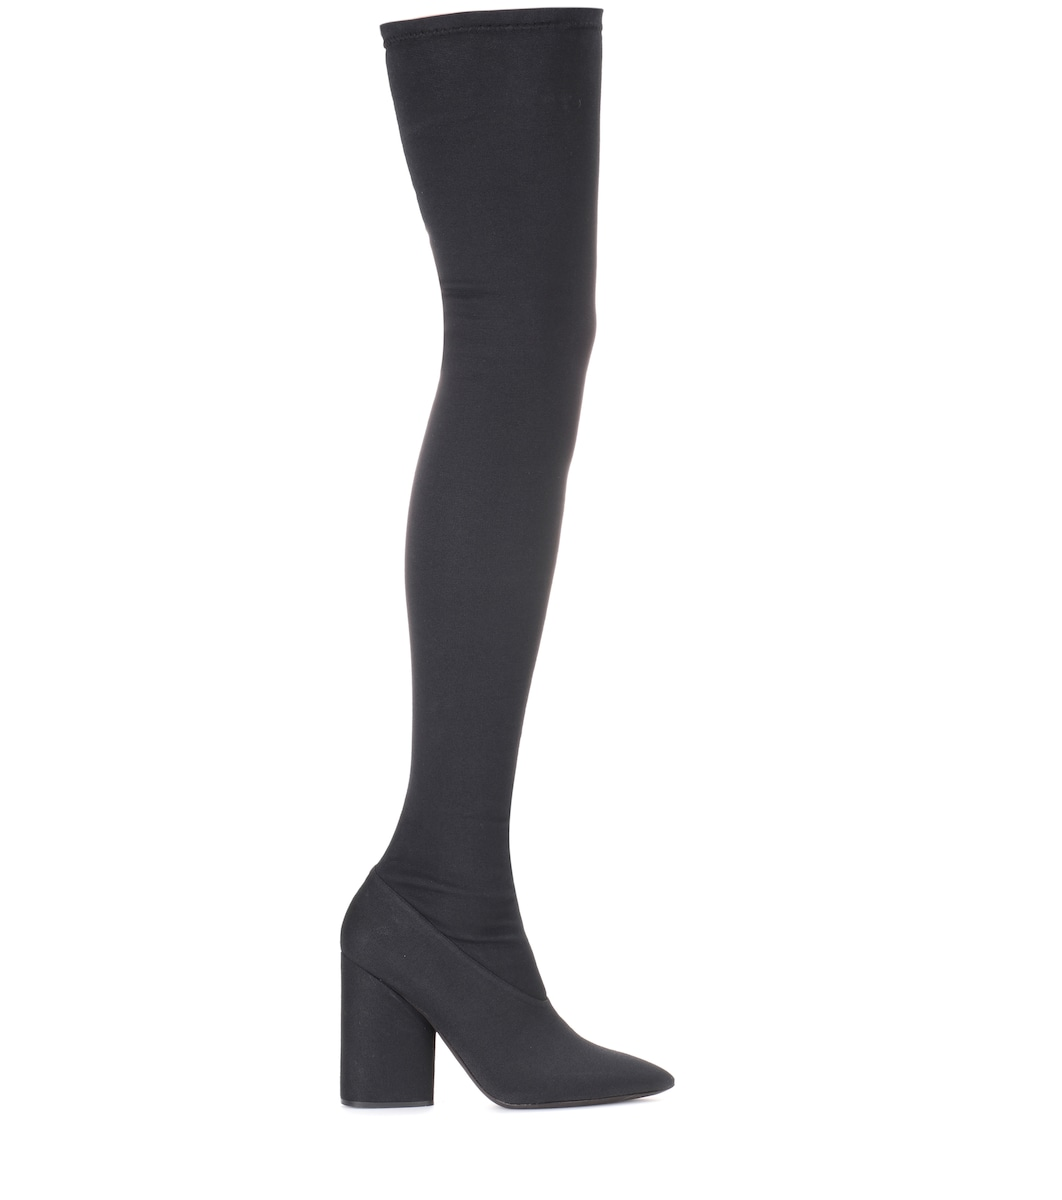 087cf2f533769 Yeezy - Over-the-knee stretch boots (SEASON 4)